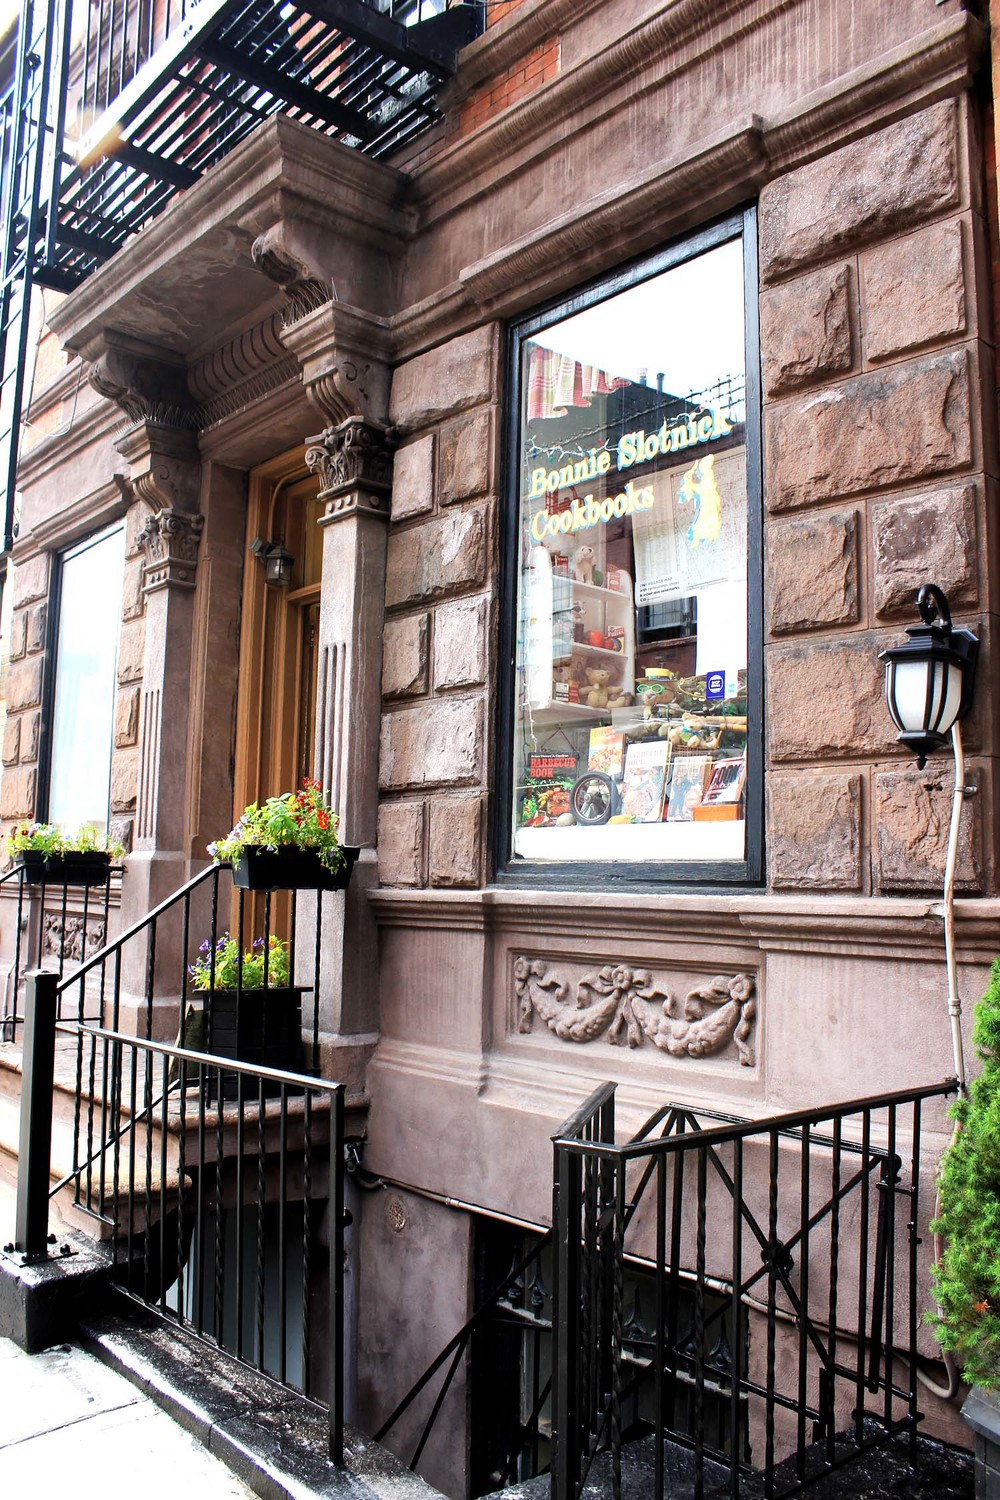 Bonnie Slotnick Cookbooks, Greenwich Village | Image: Laura Messersmith